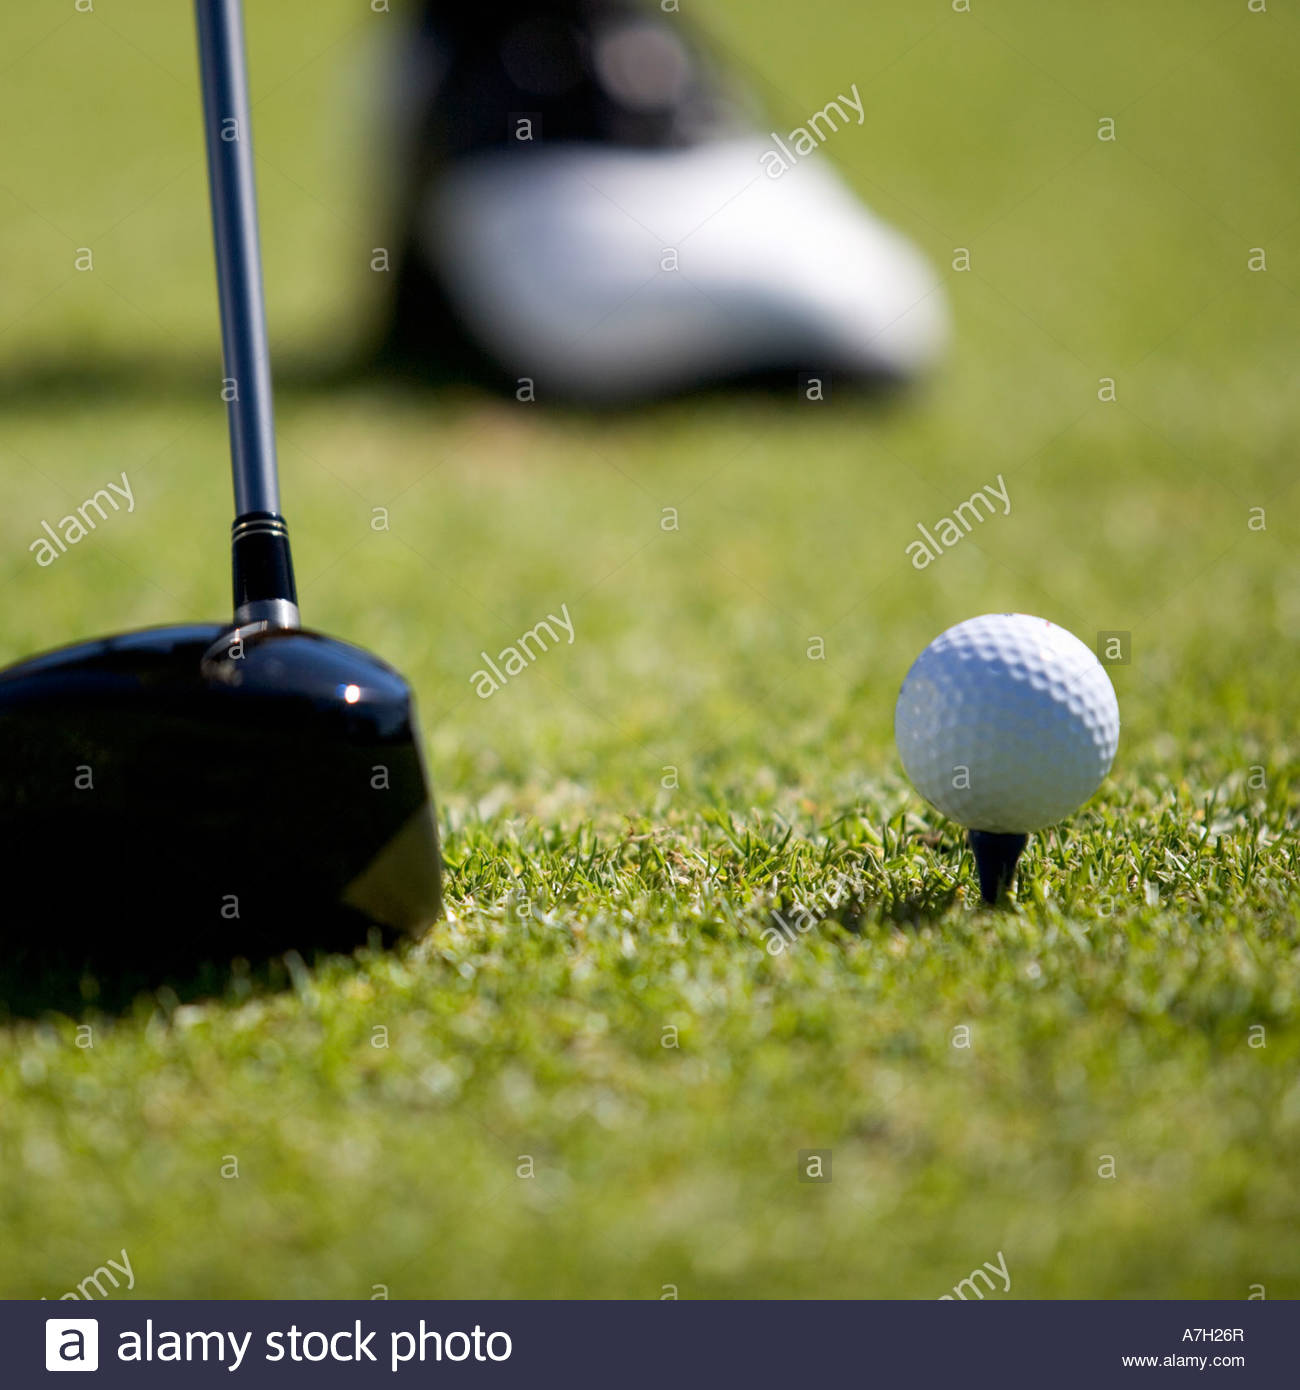 Close-up of a golf club and ball on a tee - Stock Image